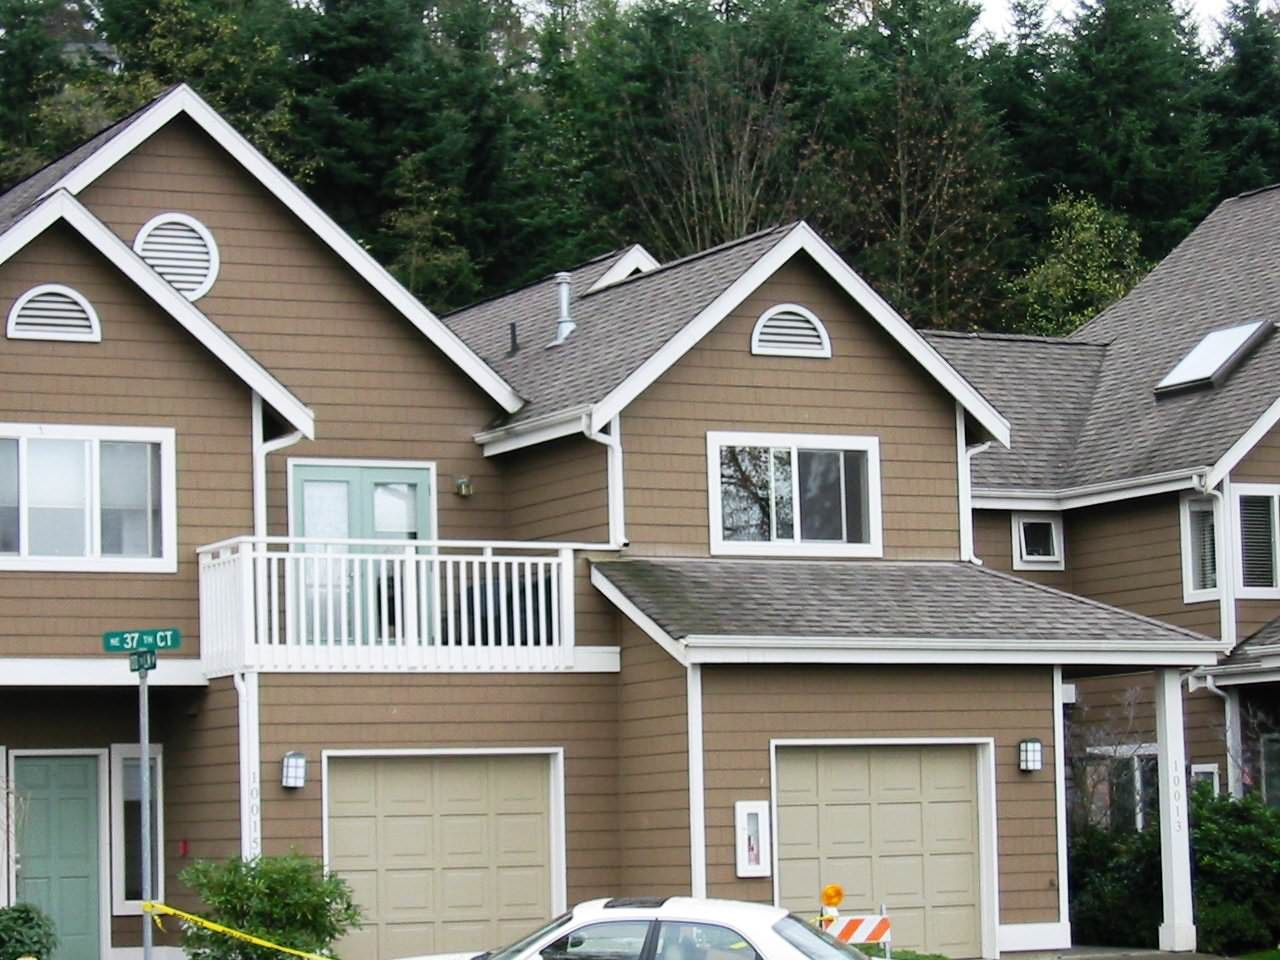 Exterior house color schemes - House Mix And Match Exterior Paint Color Combinations